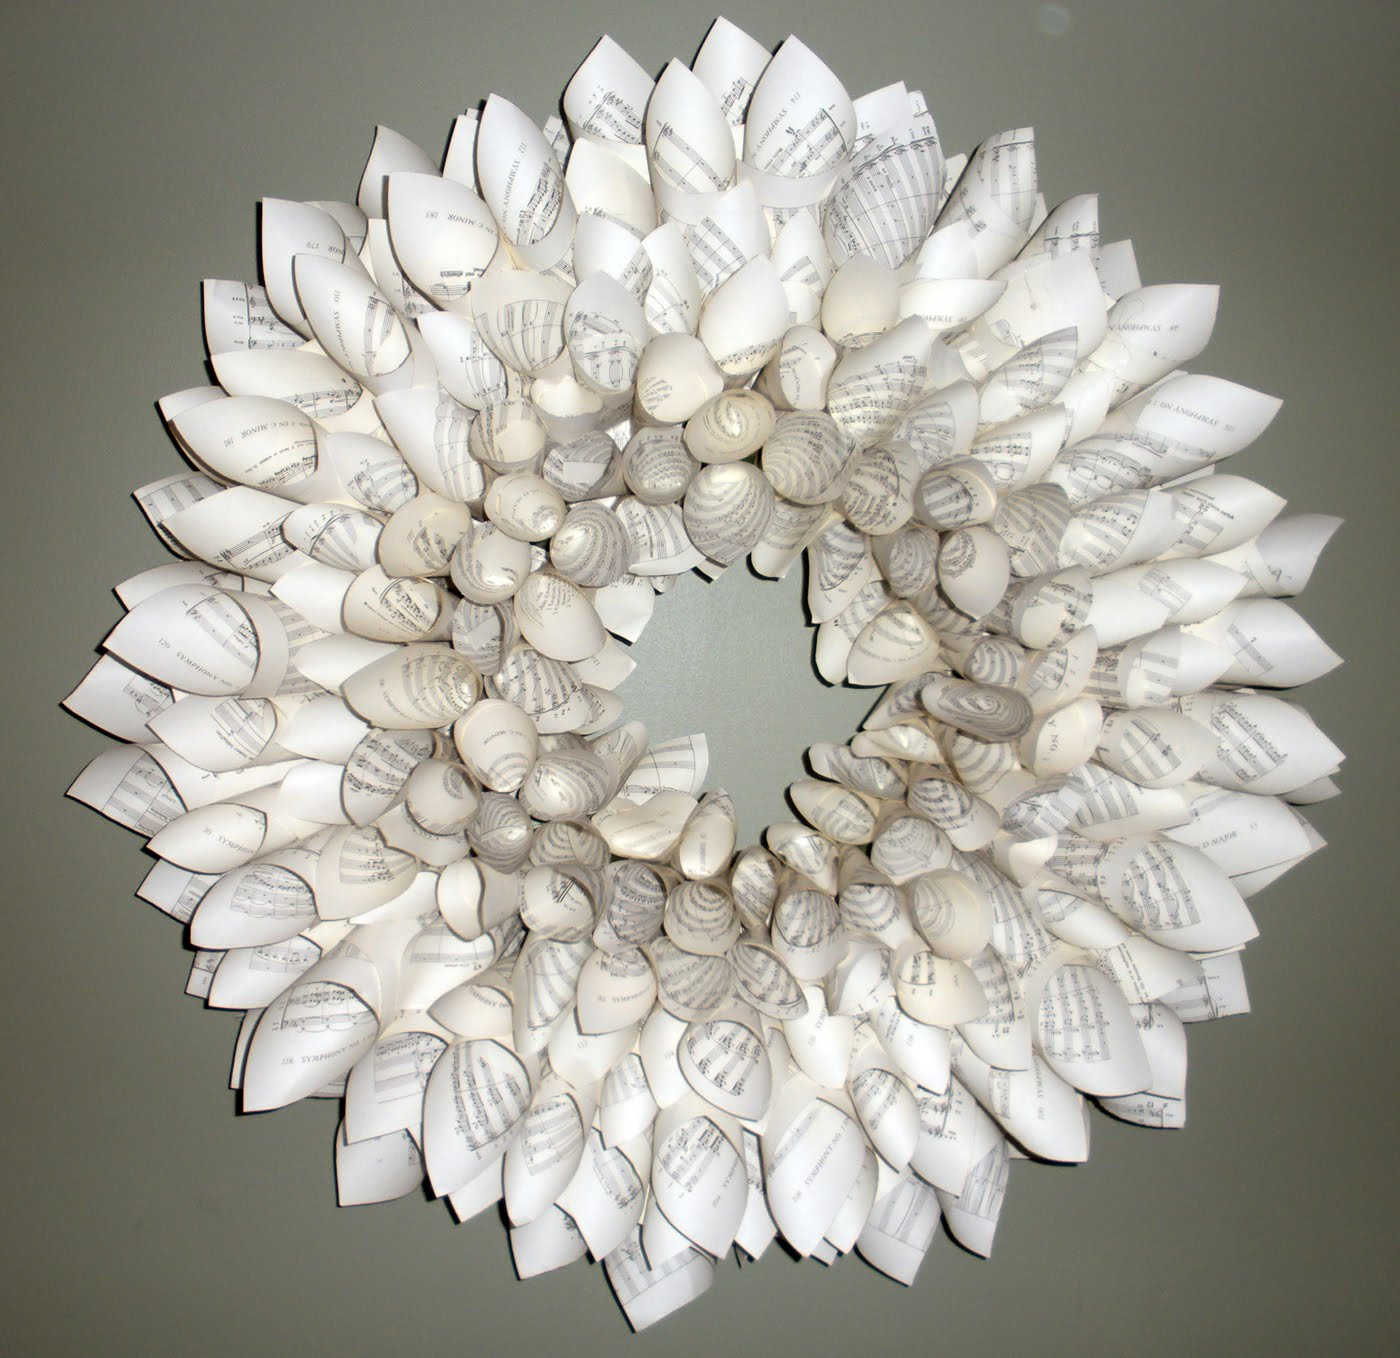 Sew Spoiled Gift Idea 2 Paper Wreaths